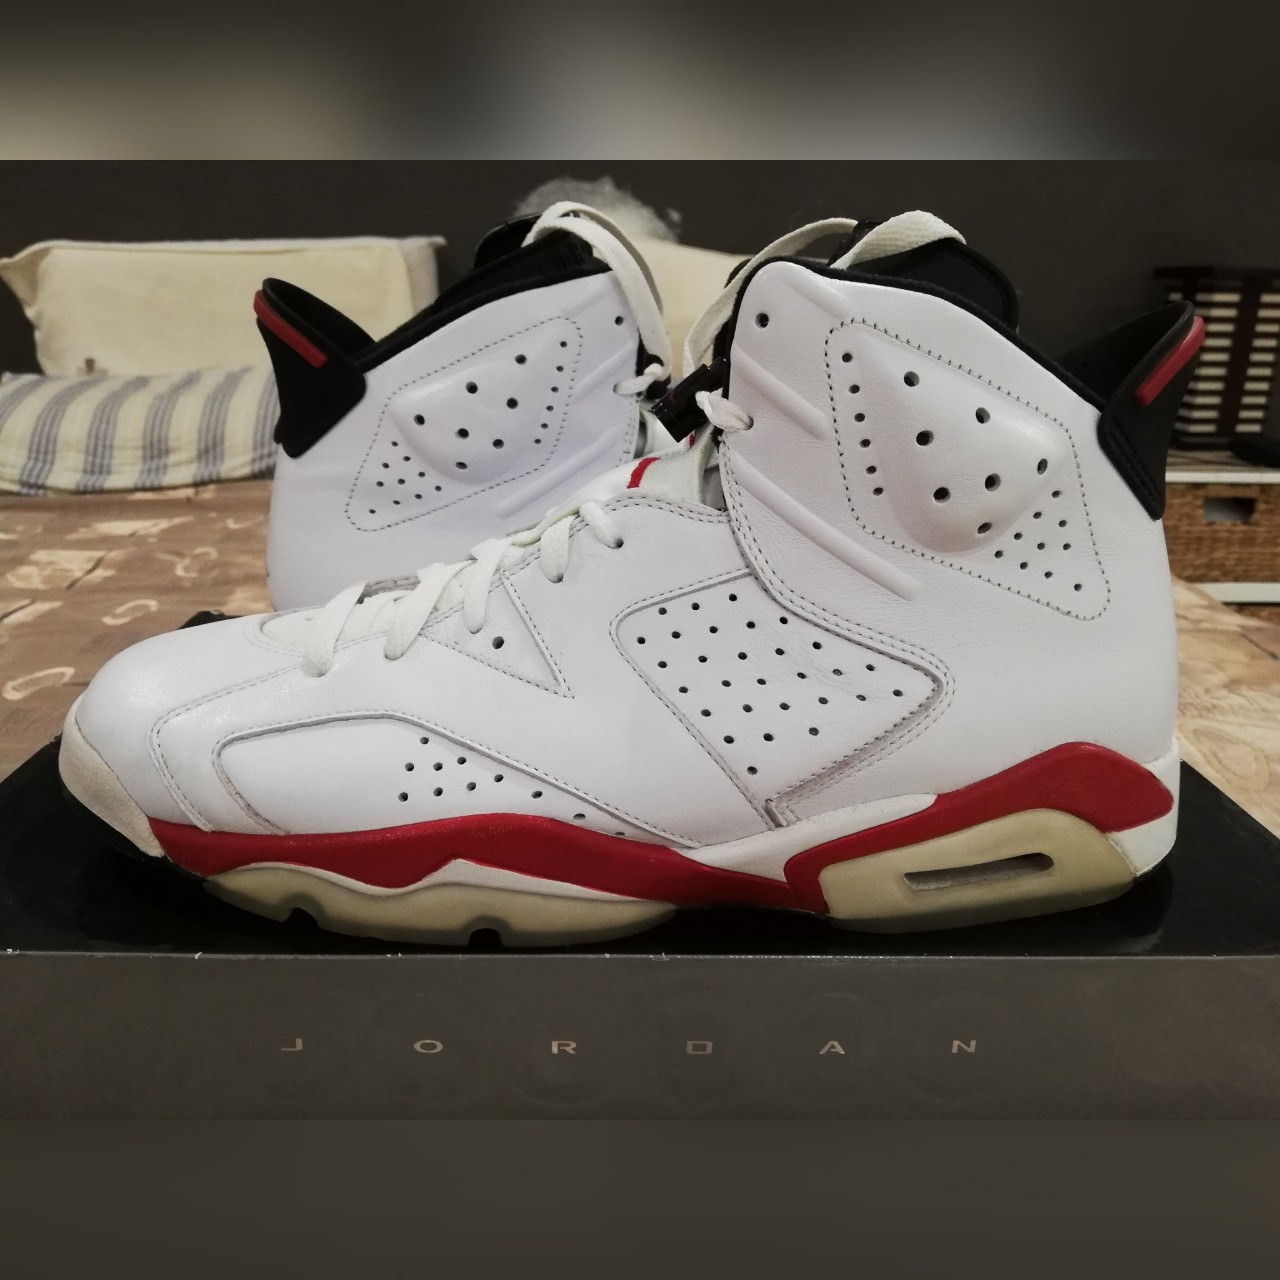 new concept af053 9fdd4 Nike Air Jordan 6 Retro 'Bulls' clean hardly worn... - Depop